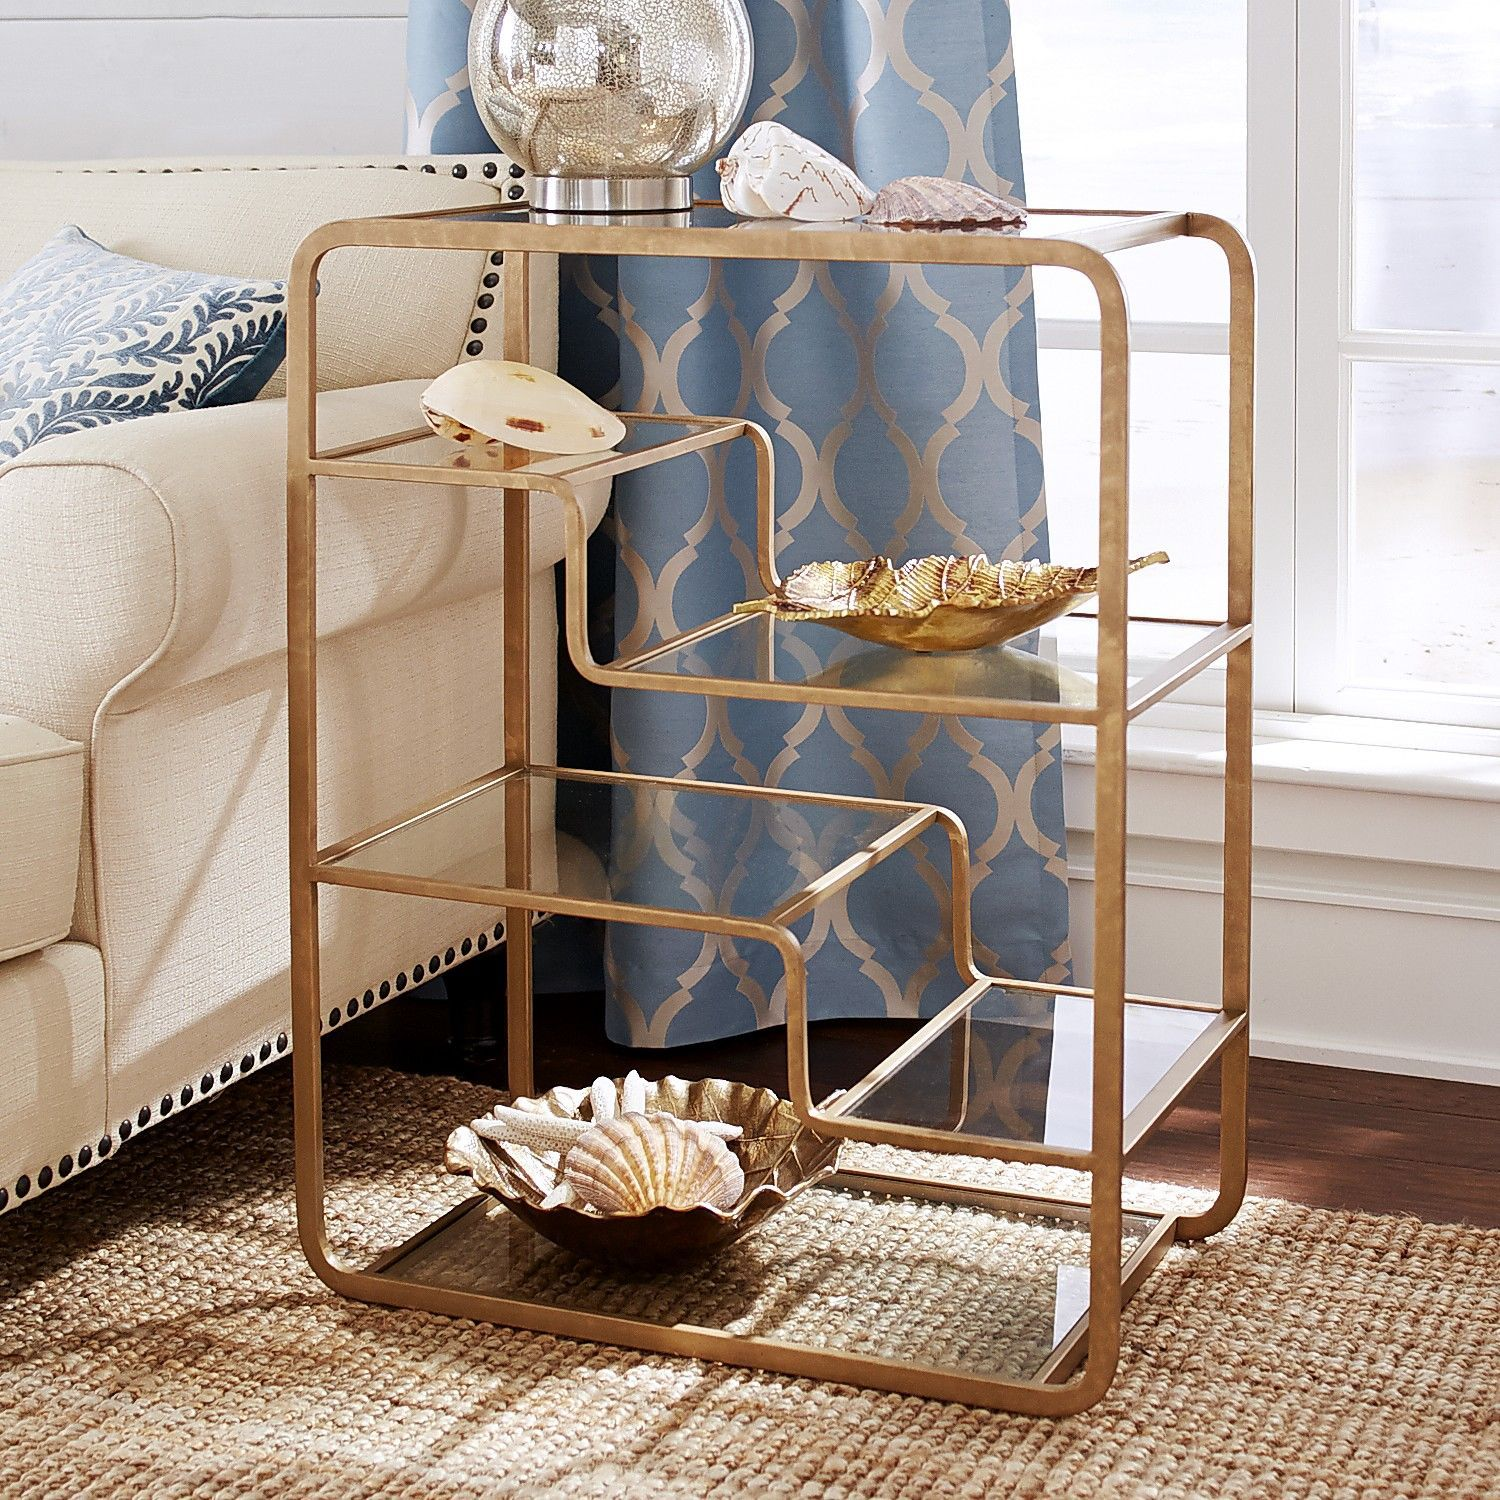 Elegant Enzo Low Shelf | Pier 1 Imports